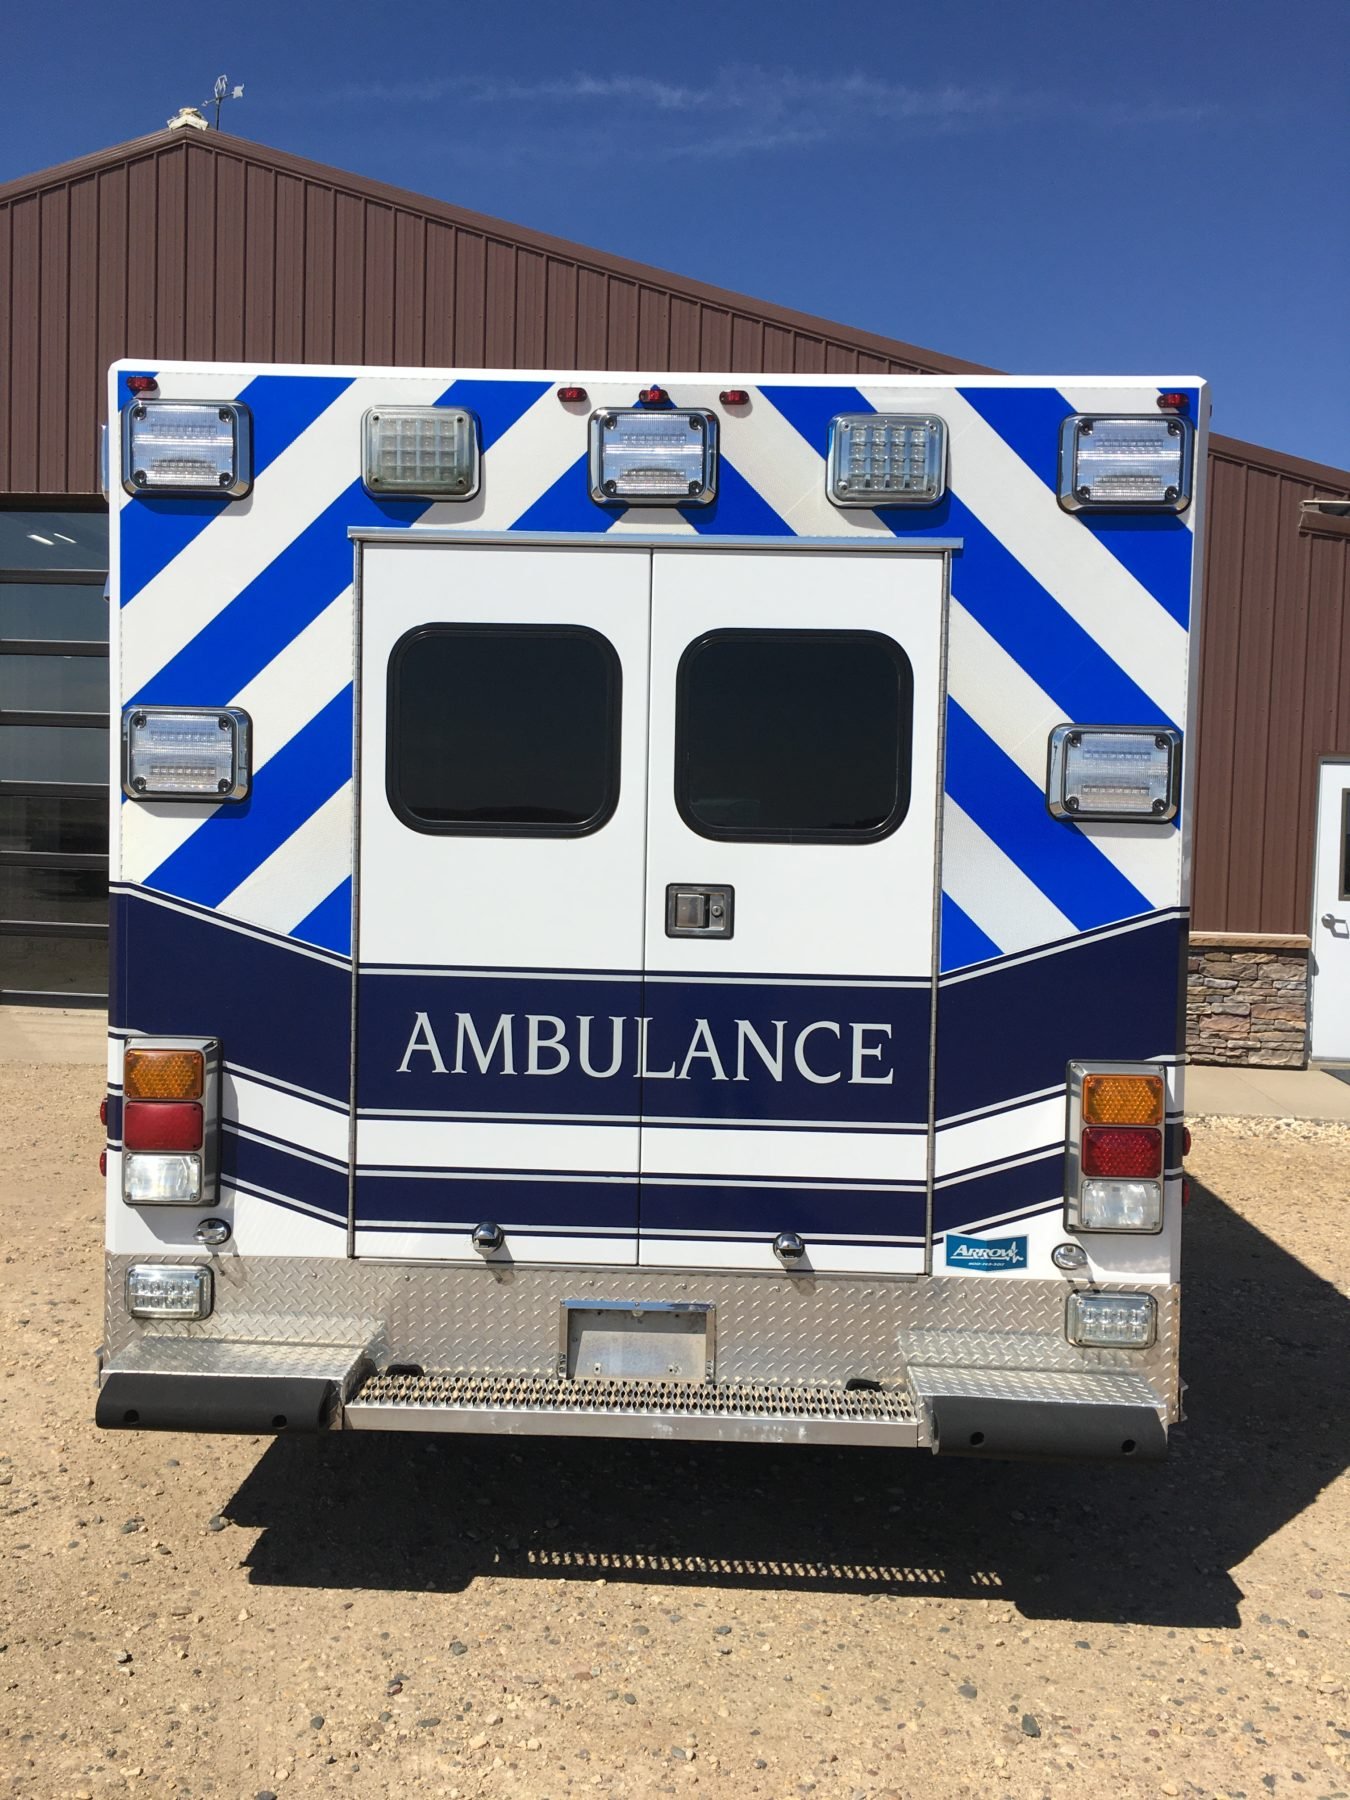 2014 Chevrolet G4500 Type 3 Ambulance For Sale – Picture 7